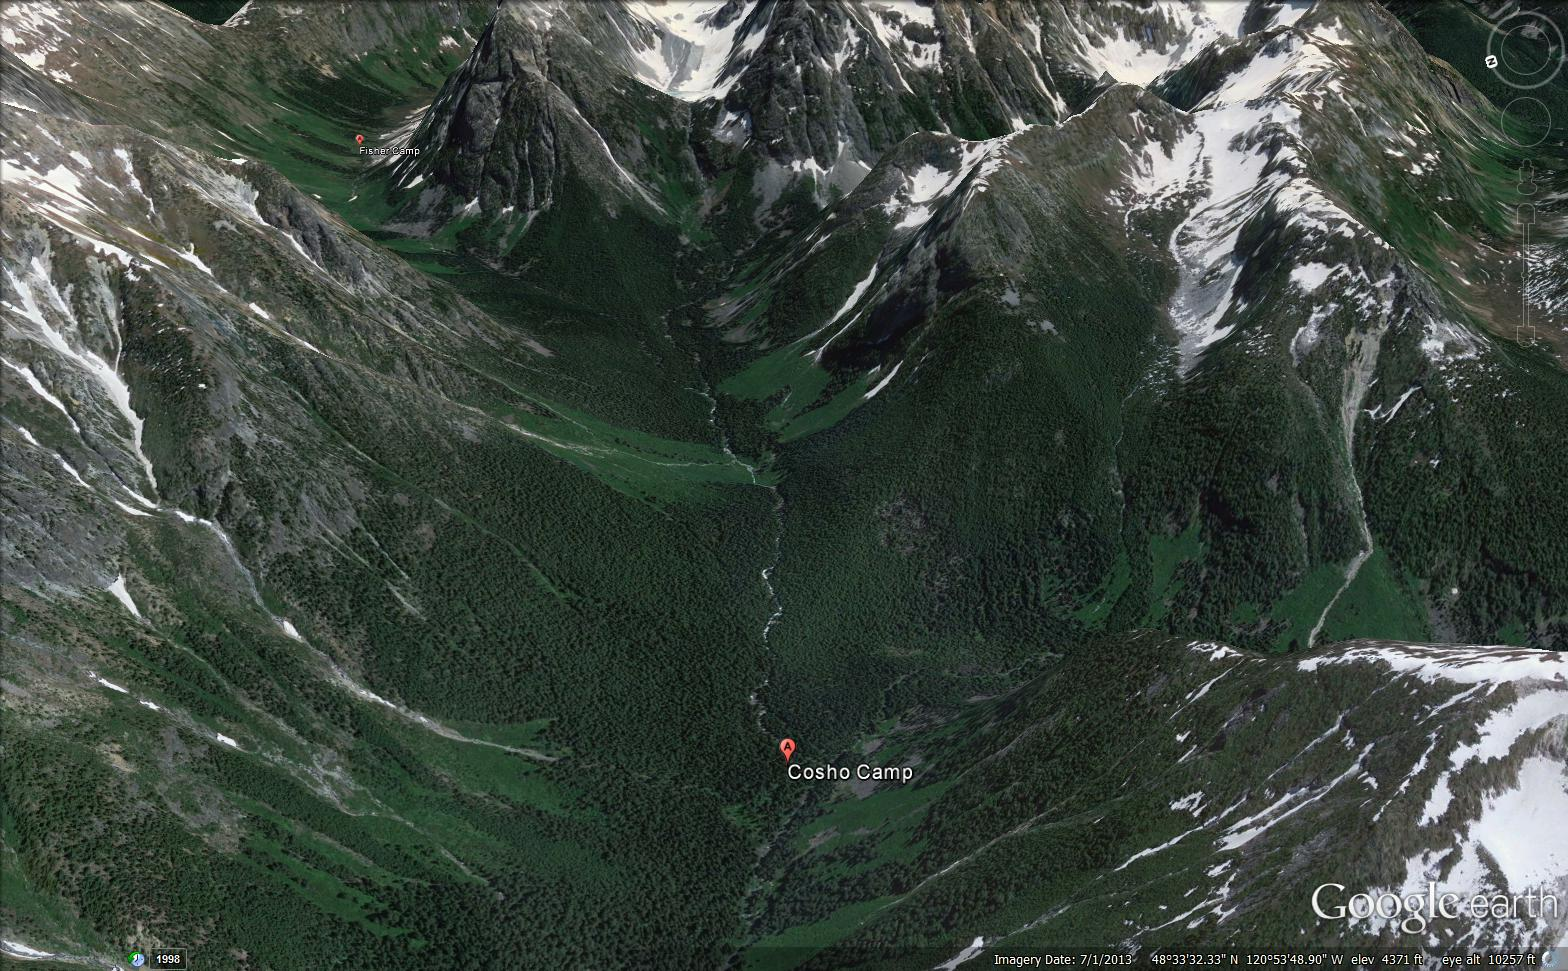 Fisher Camp is in the upper left